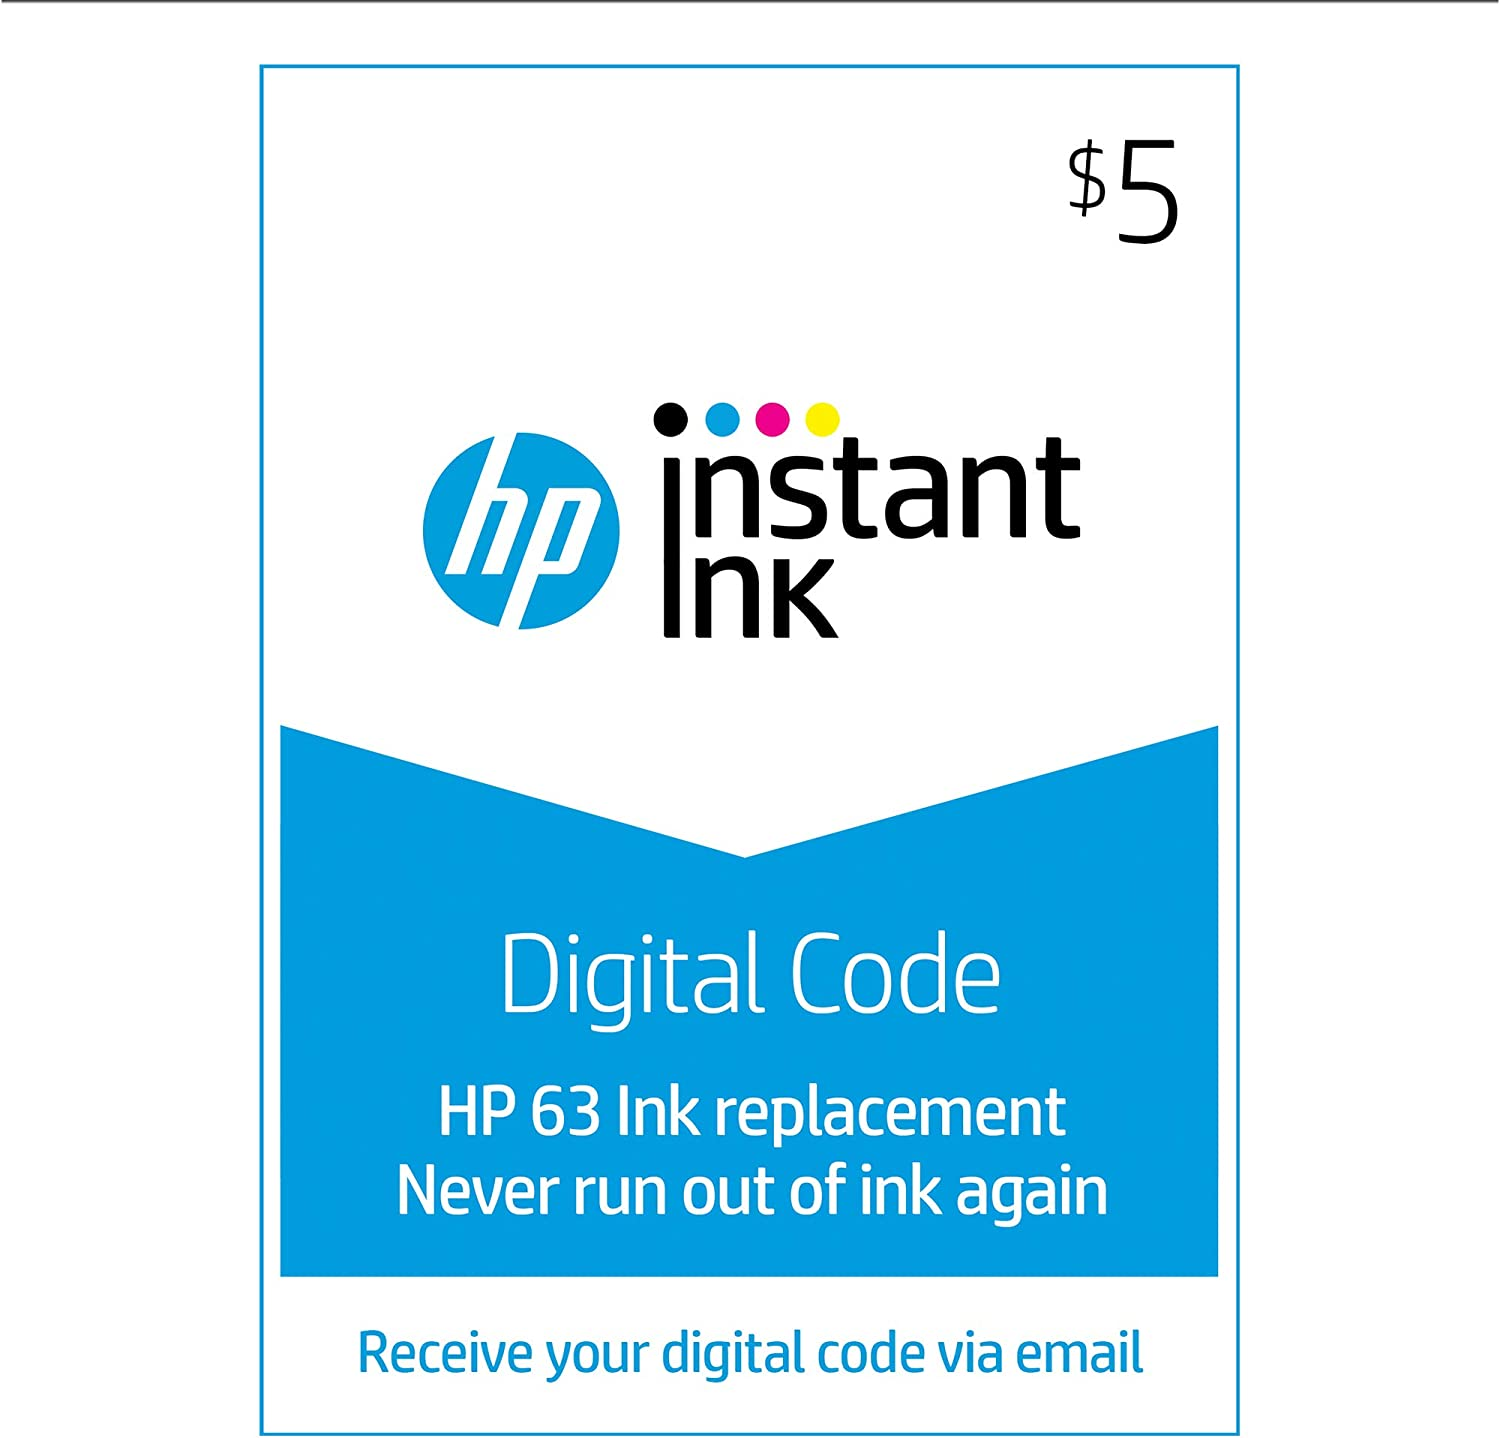 HP 63 Instant Ink $5 Prepaid Code for HP Ink Delivery Service: use to enroll in HP Instant Ink [Online Code] 71o-4AQPsPL